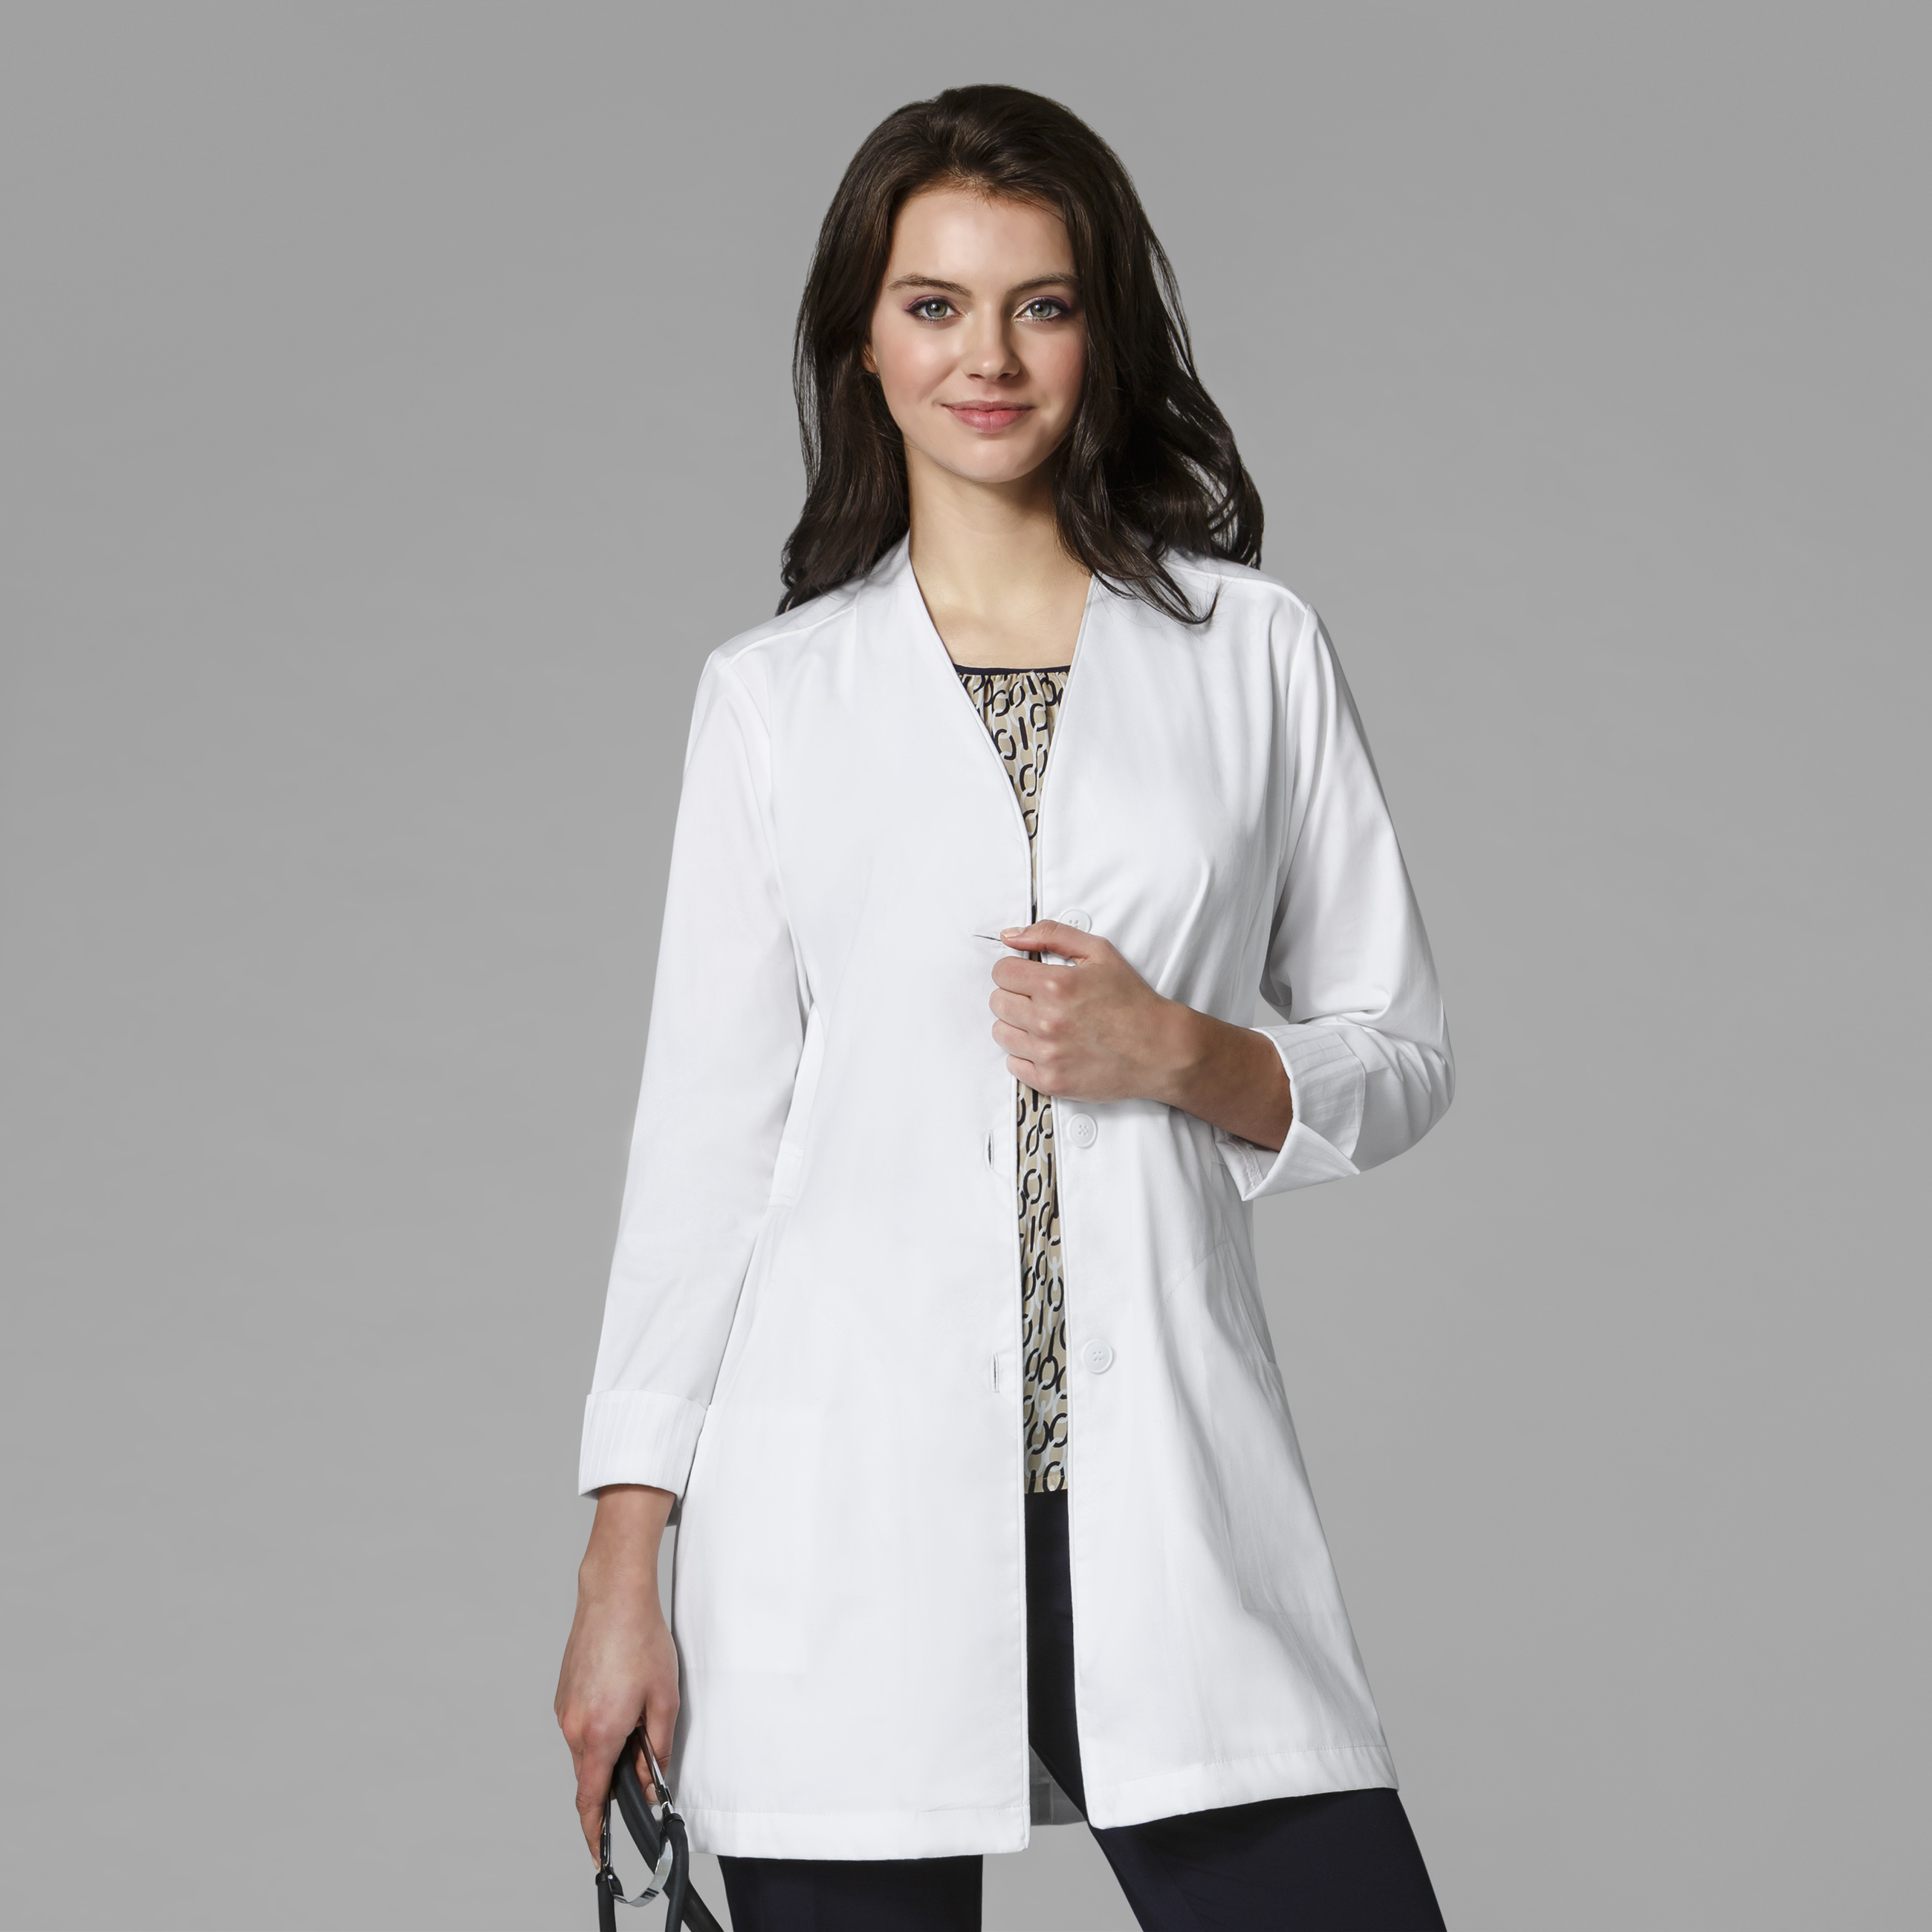 LabCoat-WW-7203